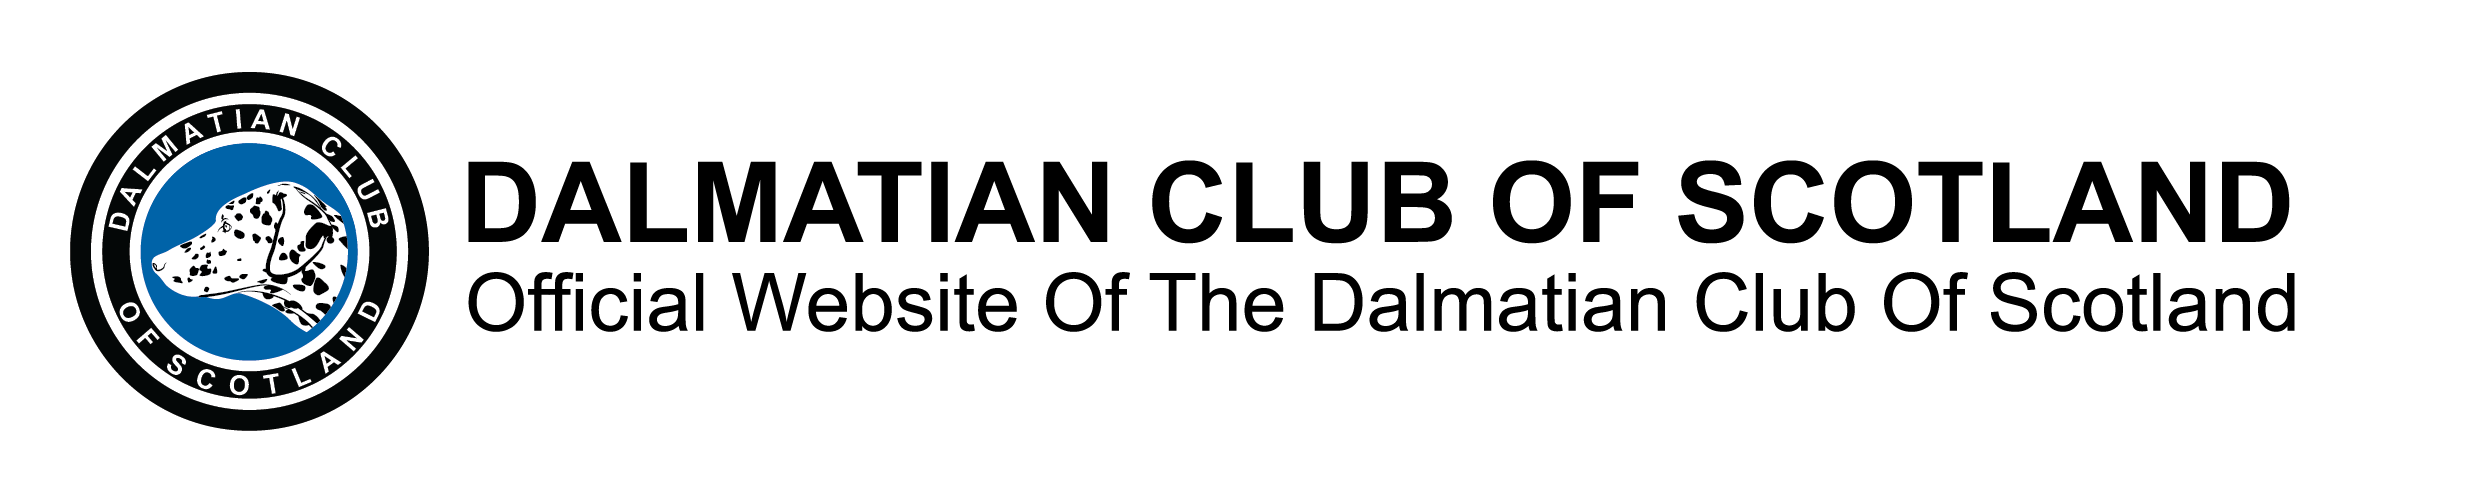 Dalmatian Club Of scotland